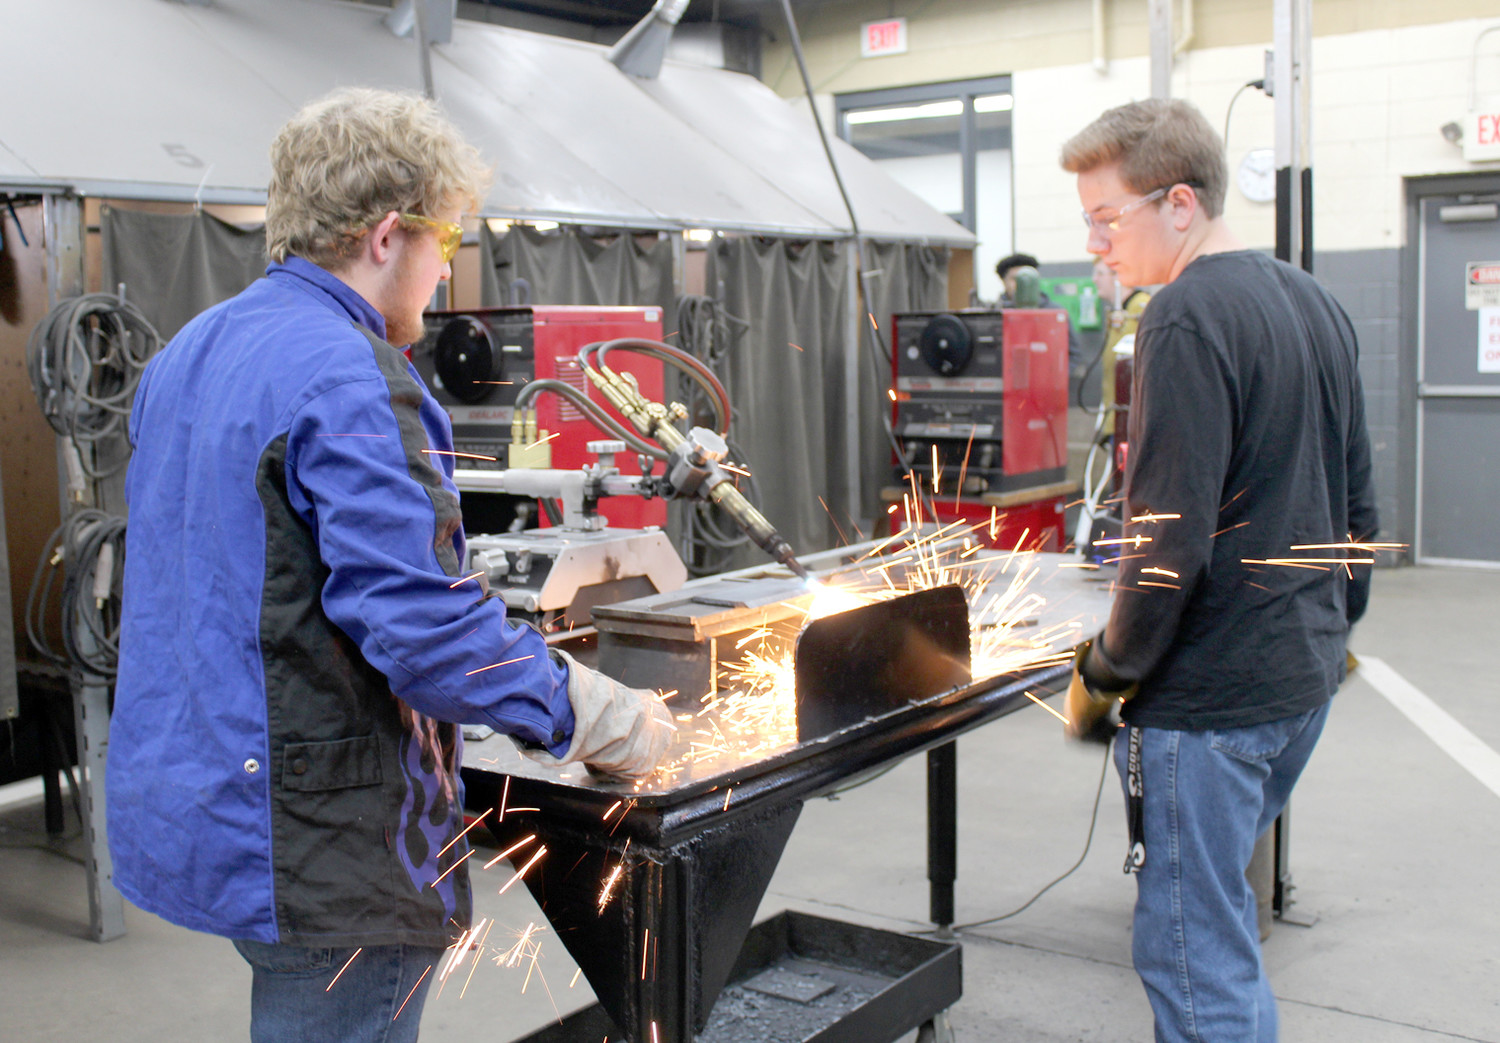 STUDENTS Chandler Kelley, left, and Rob Merritt work on a project in welding class at Bradley Central High School. The class presented a welding project to Whirlpool while paired with the company for Manufacturing Week.